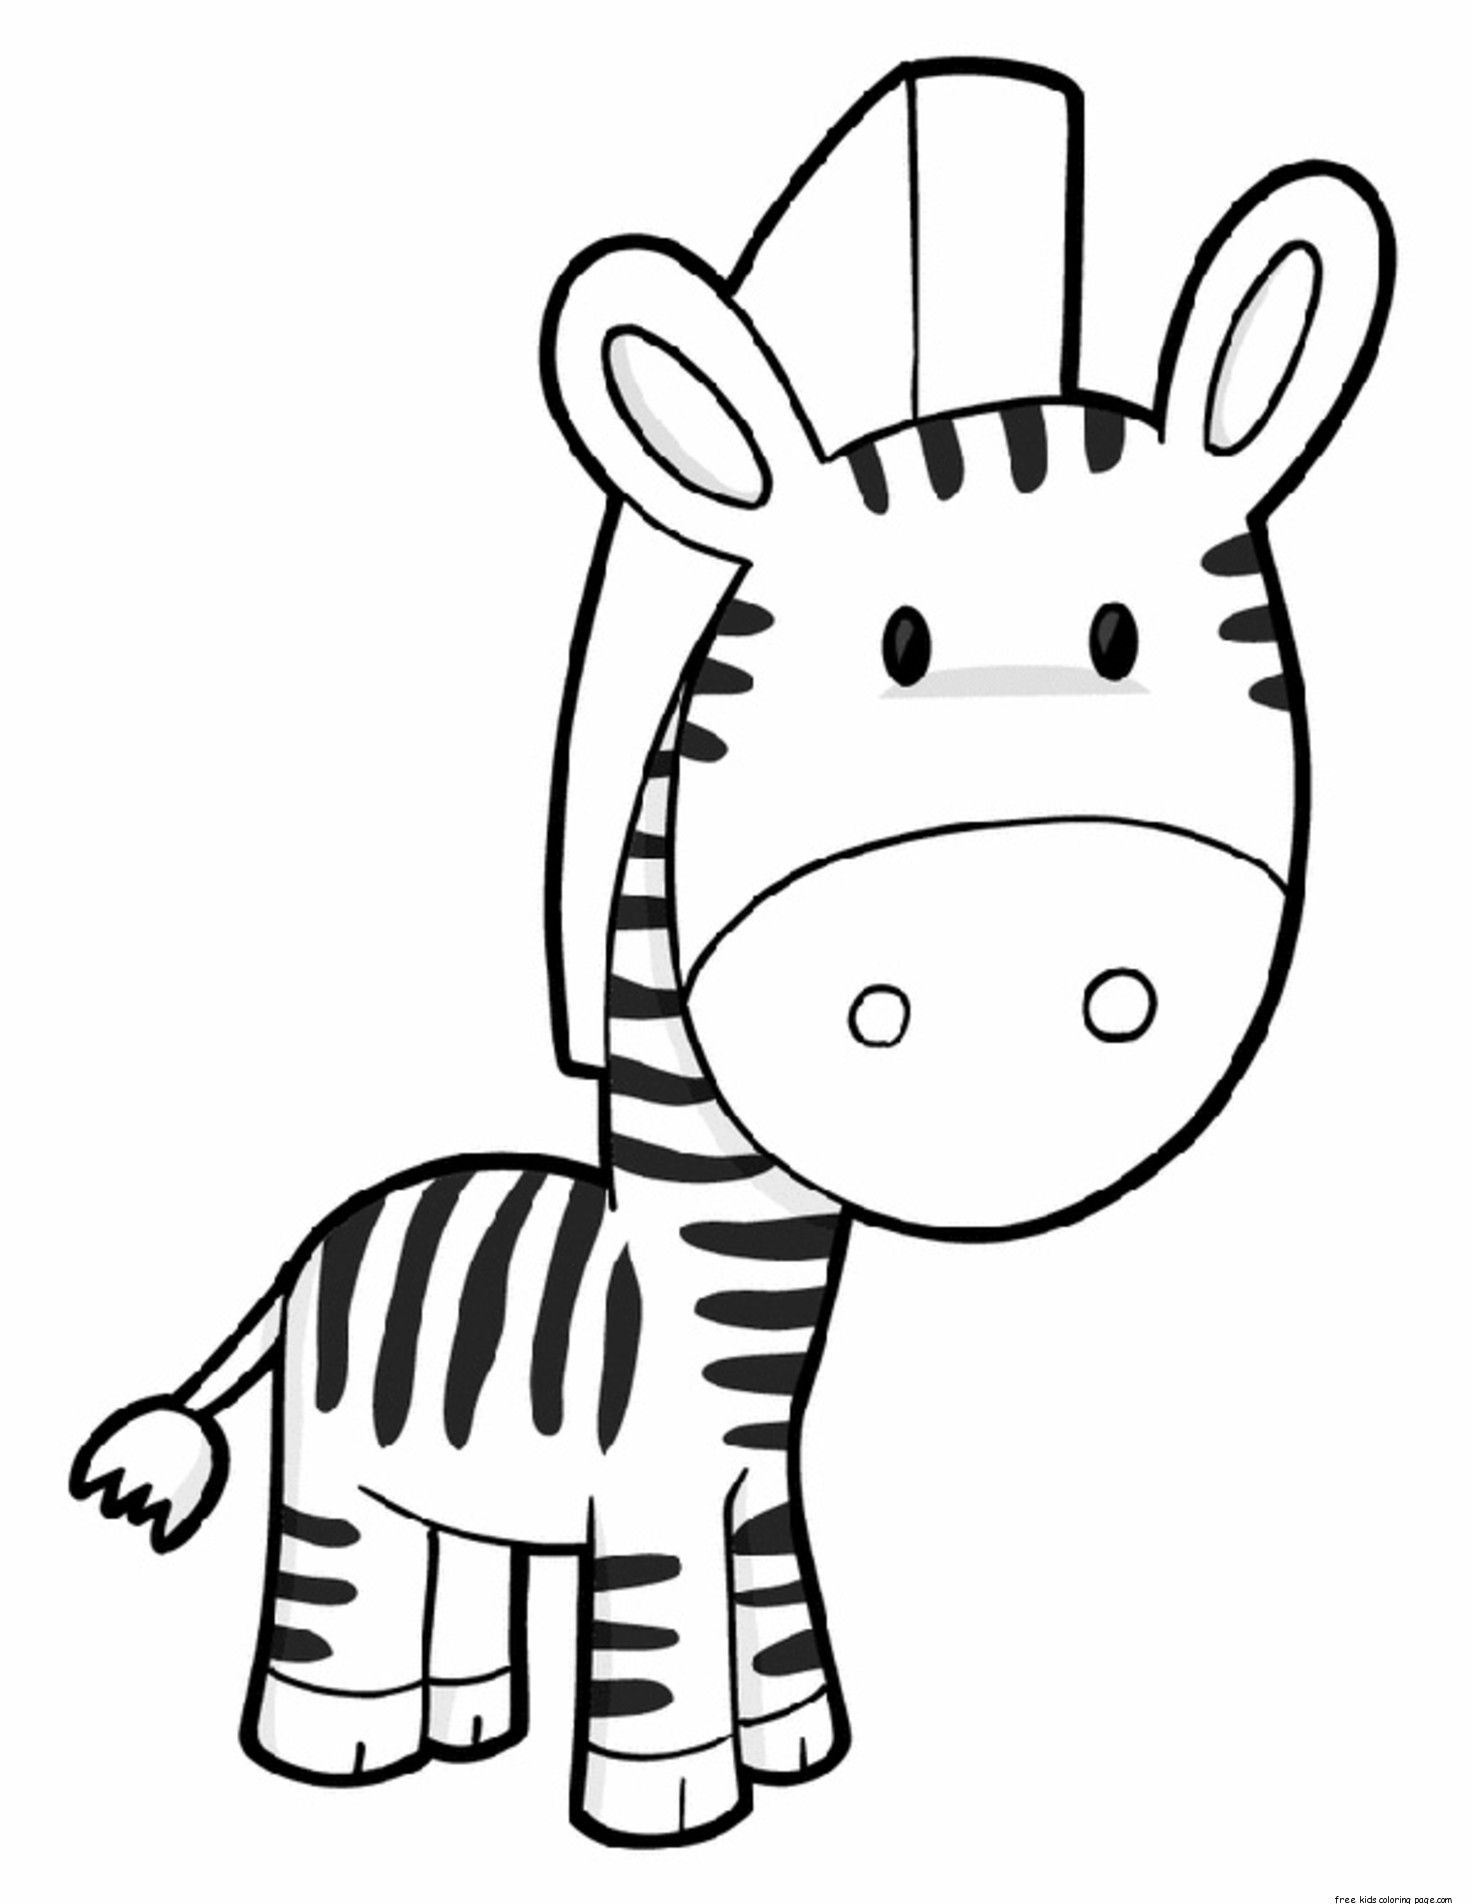 Free zebra coloring pages to print - Printable Cute Zebra Coloring Pages